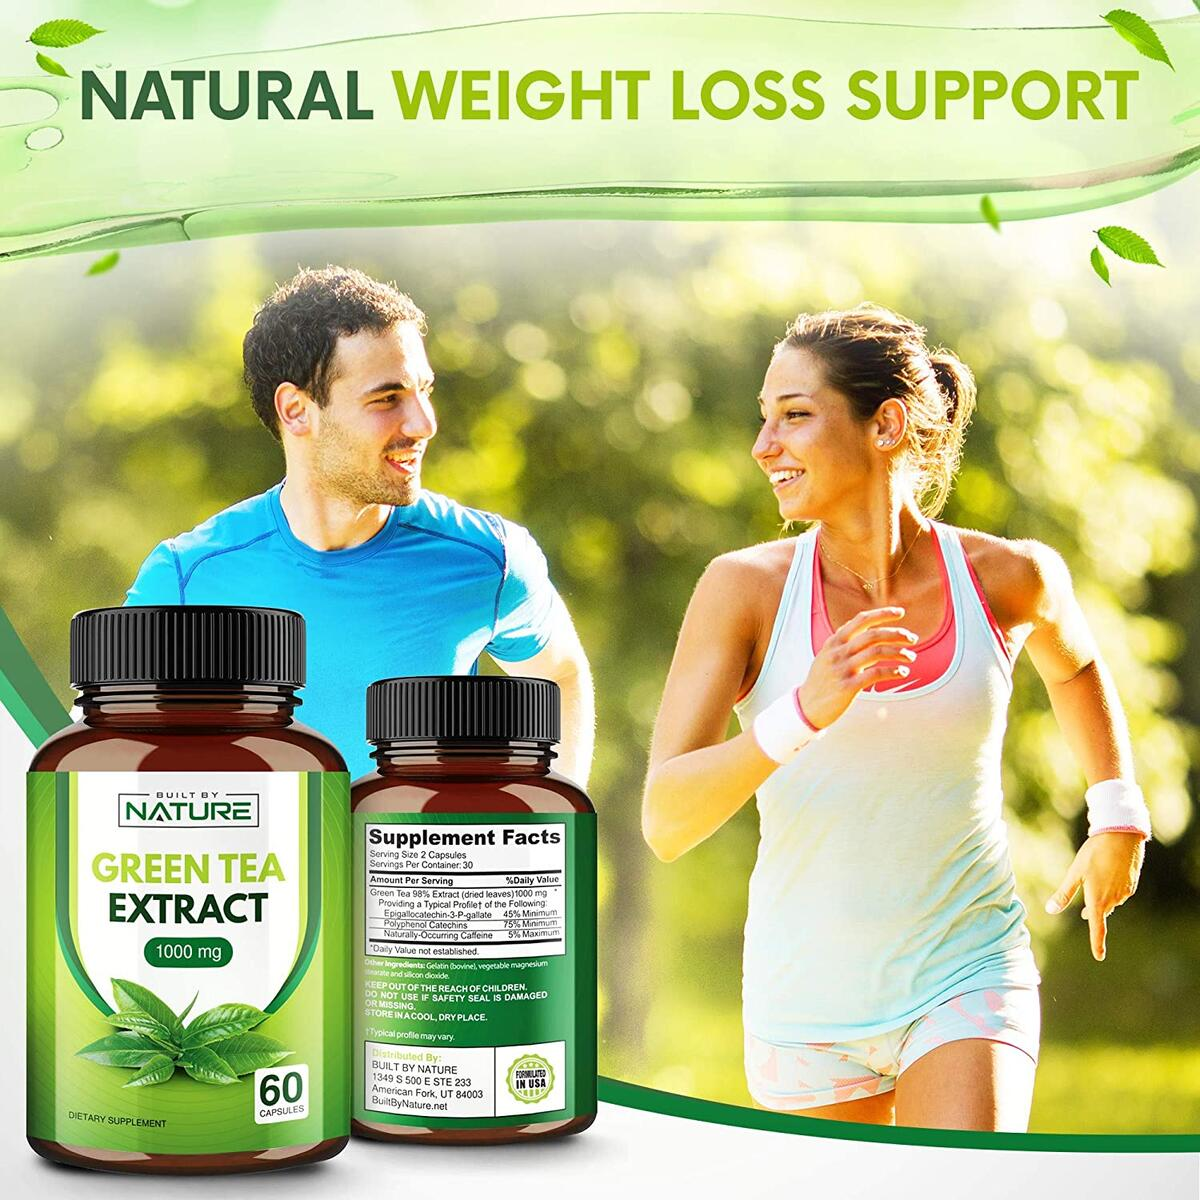 Green Tea Extract 1000mg - Weight Loss Support Supplement with EGCG - 60 Capsules (30 Day Supply)